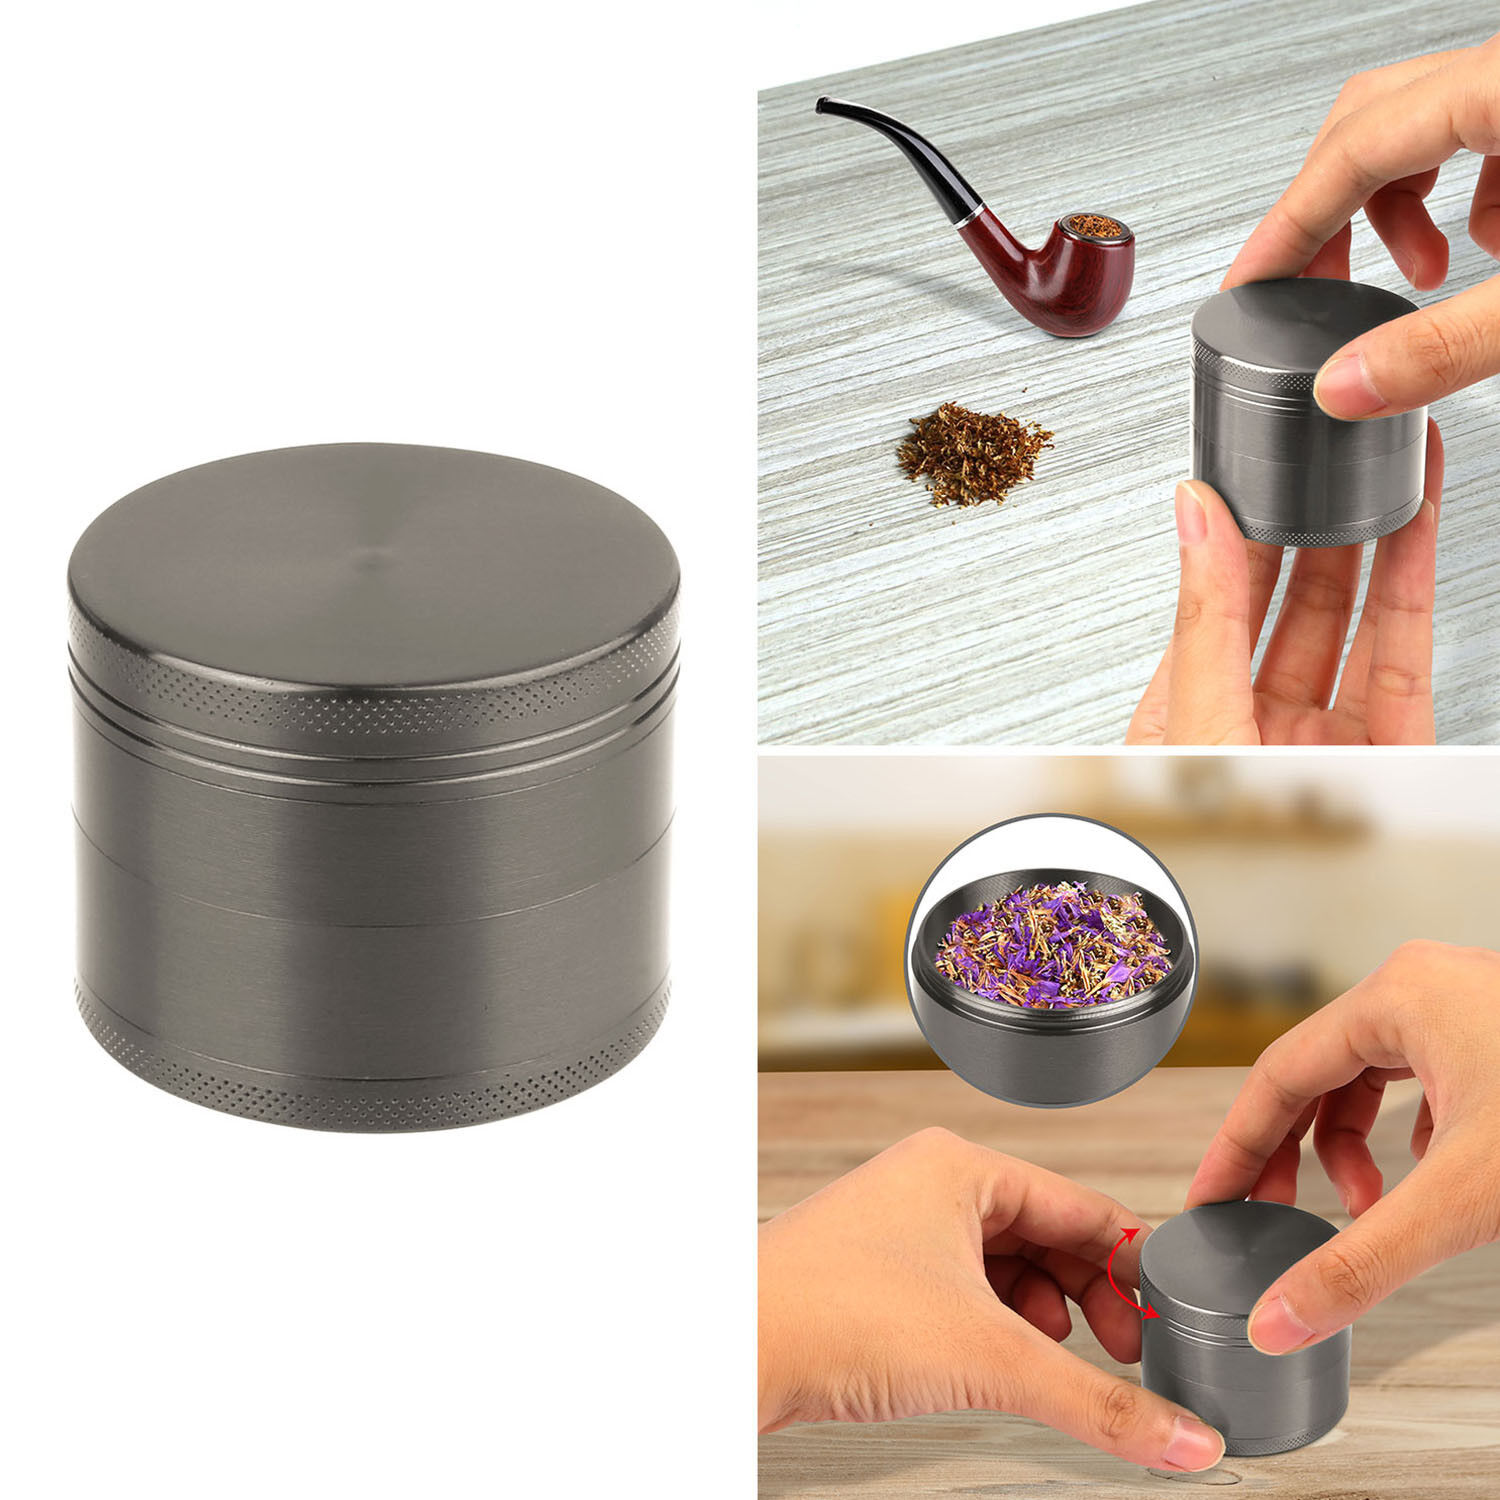 4 Piece Magnetic Tobacco Herb Grinder Spice Aluminum With Scoop Gray